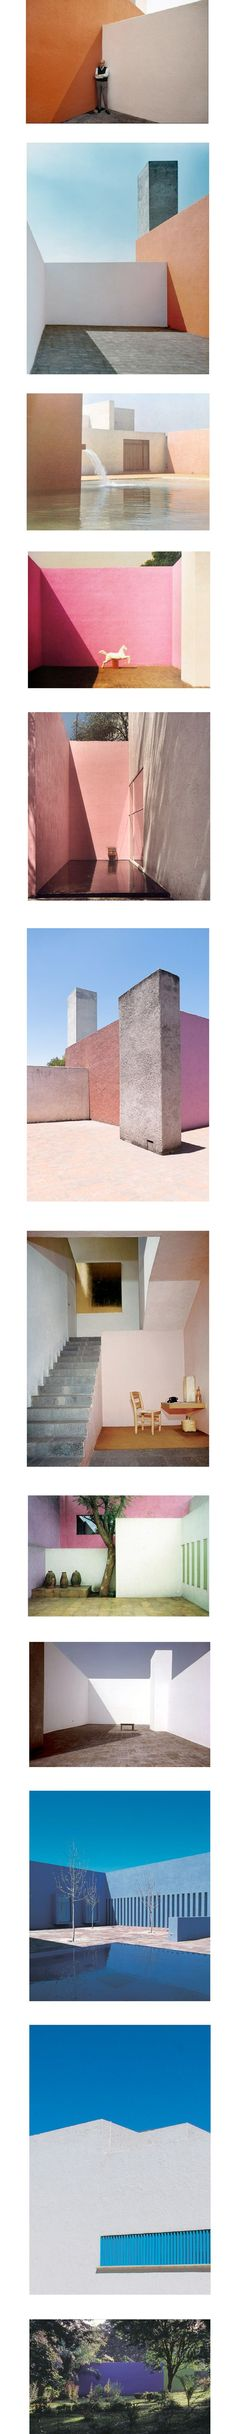 Luis Barragan, architecte mexicain (1902-1988) like Alice in Wonderland !